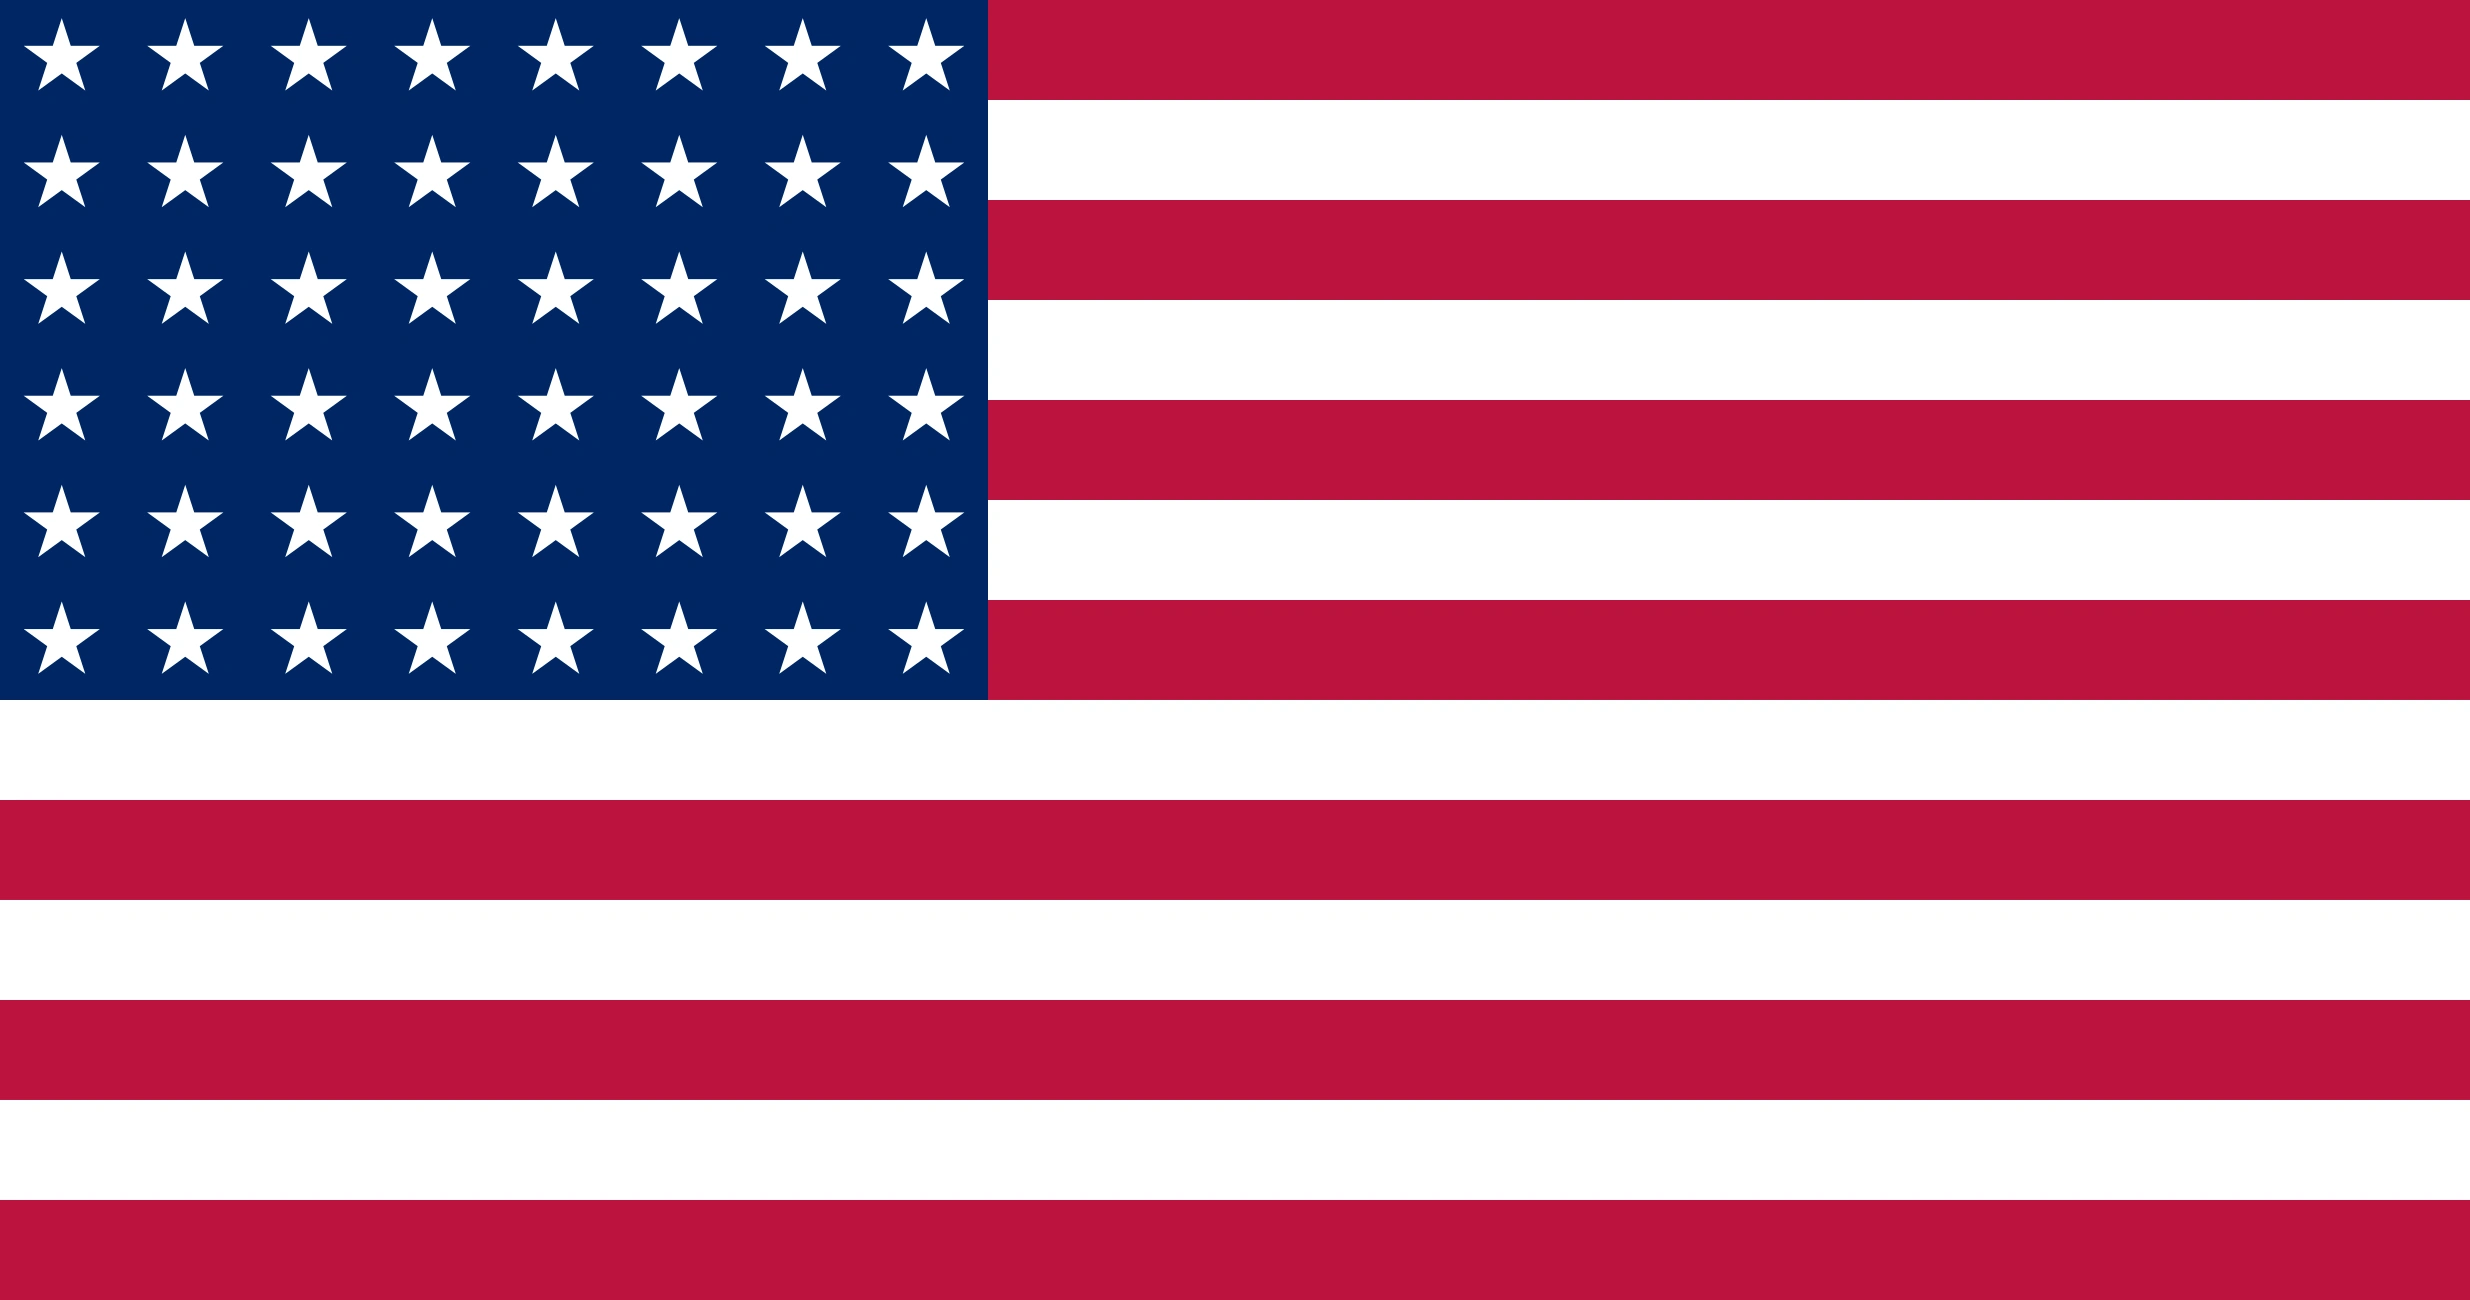 United States of America | The Kaiserreich Wiki | FANDOM